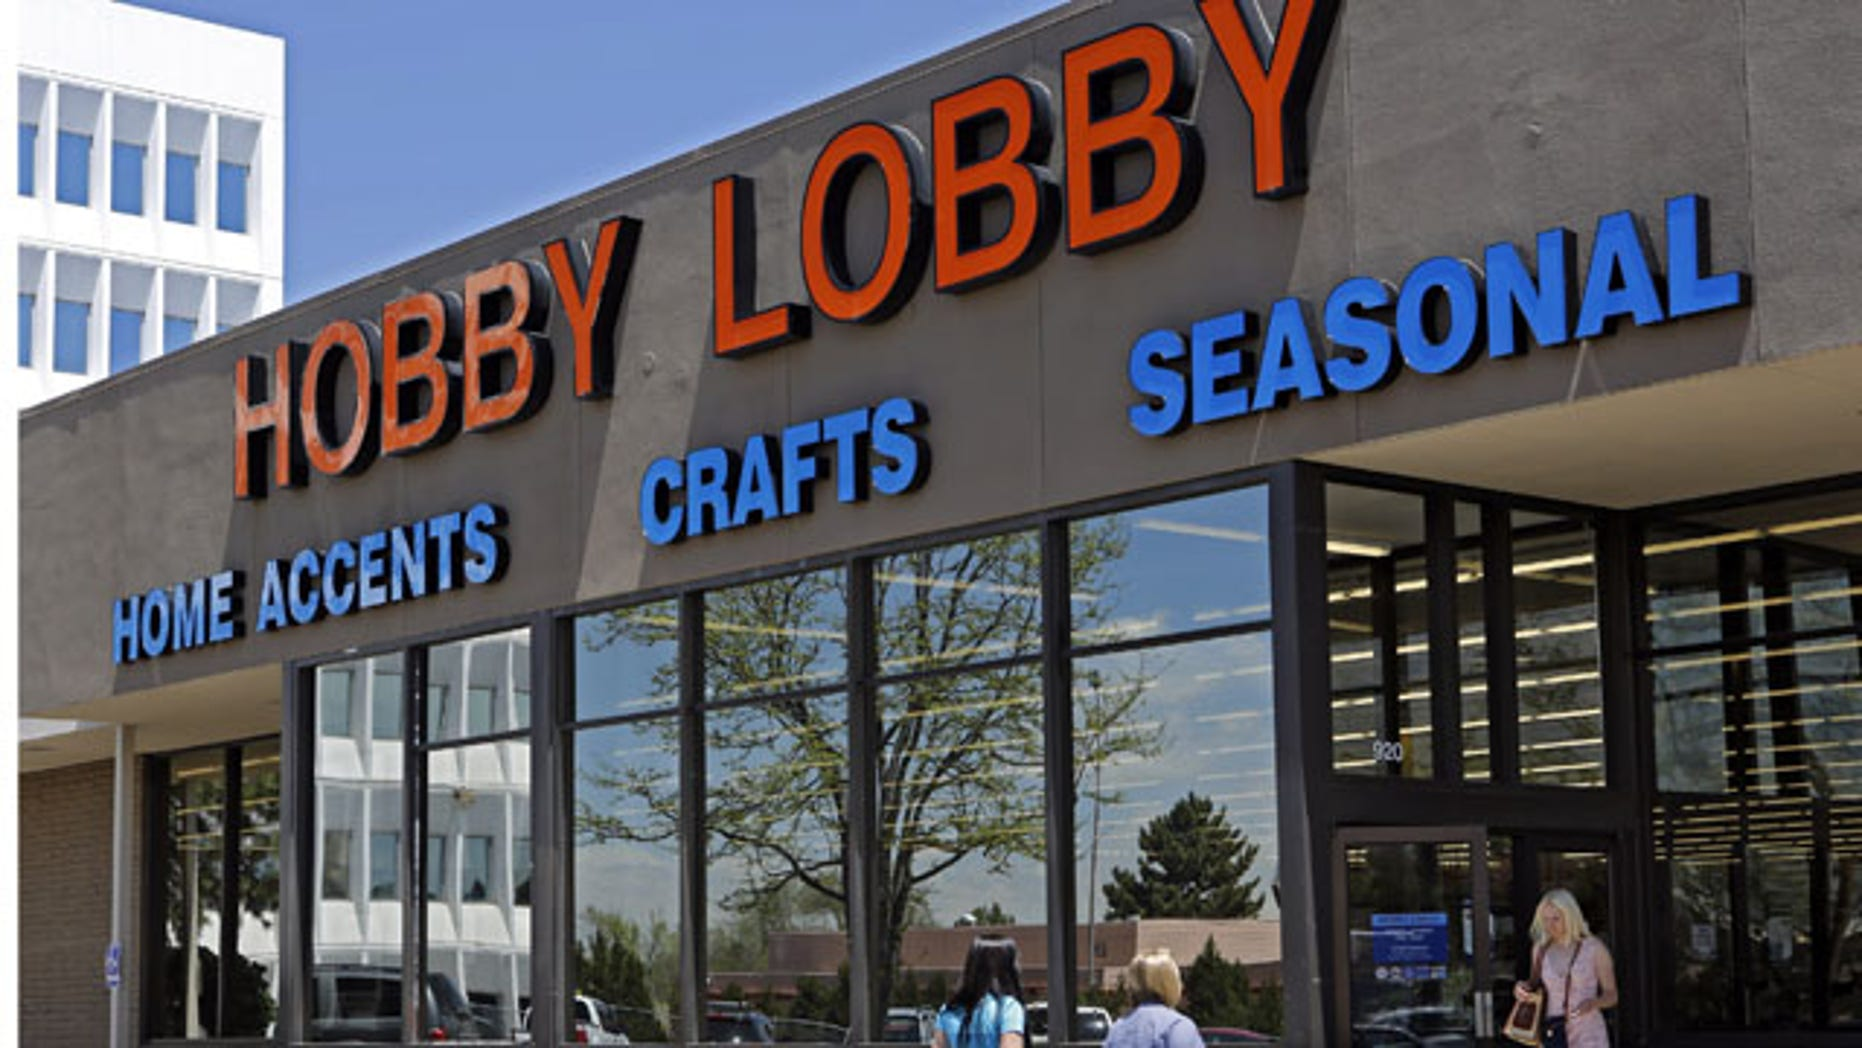 FILE - This May 22, 2013 file photo shows a Hobby Lobby store in Denver. (AP Photo)